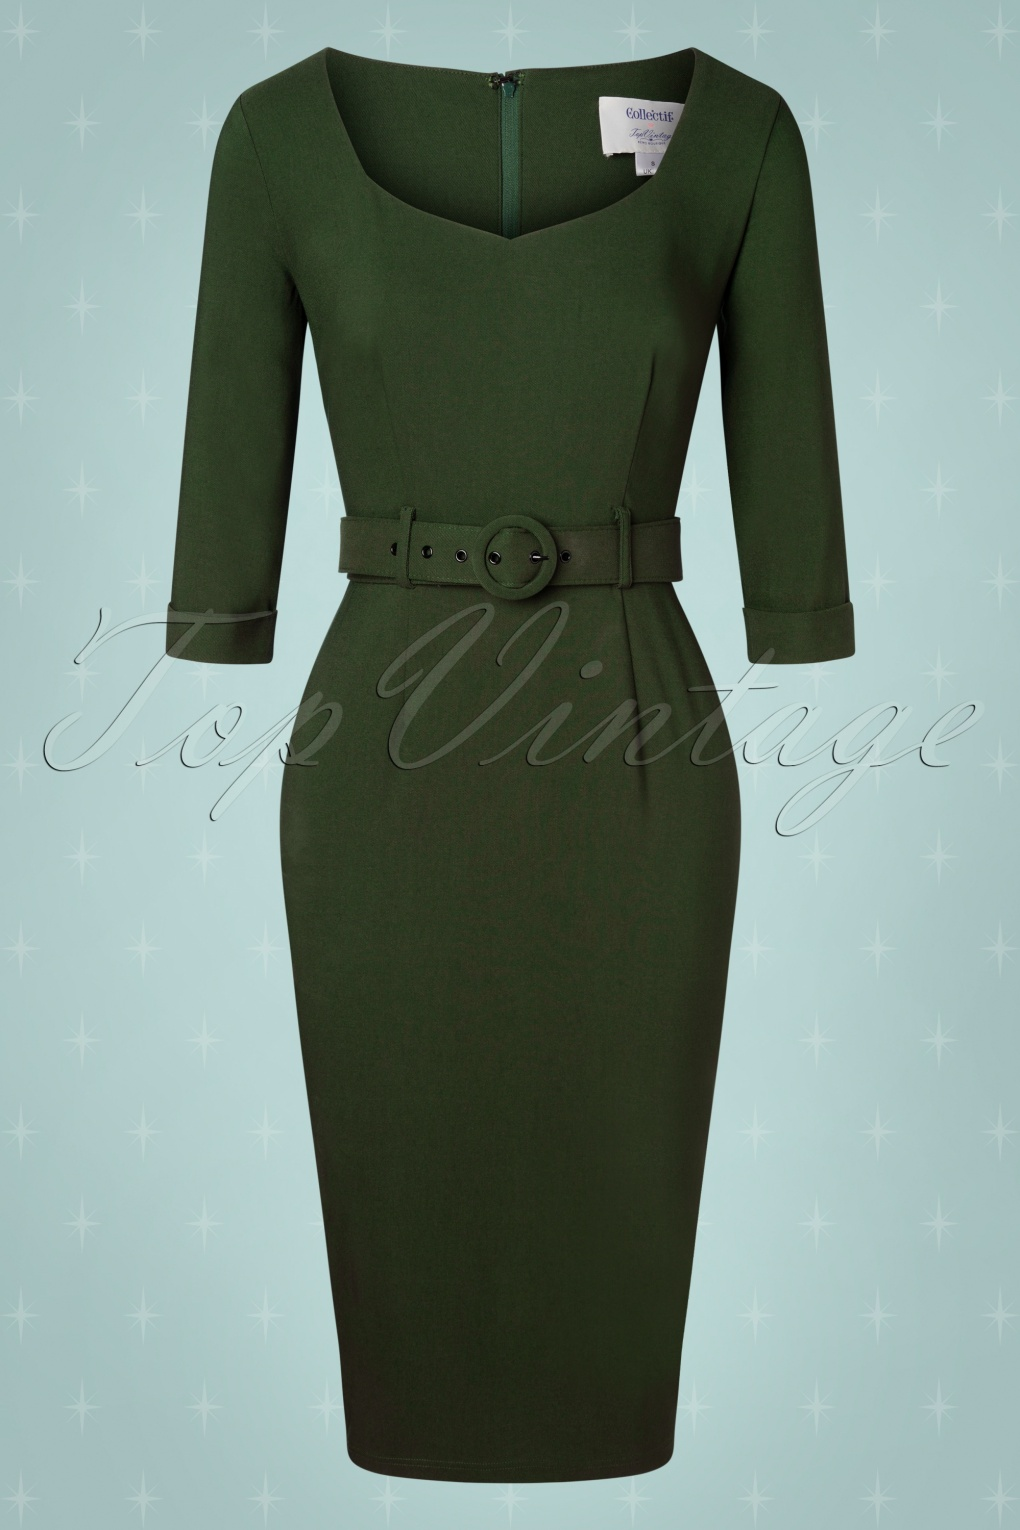 Wiggle Dresses | Pencil Dresses 40s, 50s, 60s 50s Katya Pencil Dress in Forest Green £62.18 AT vintagedancer.com